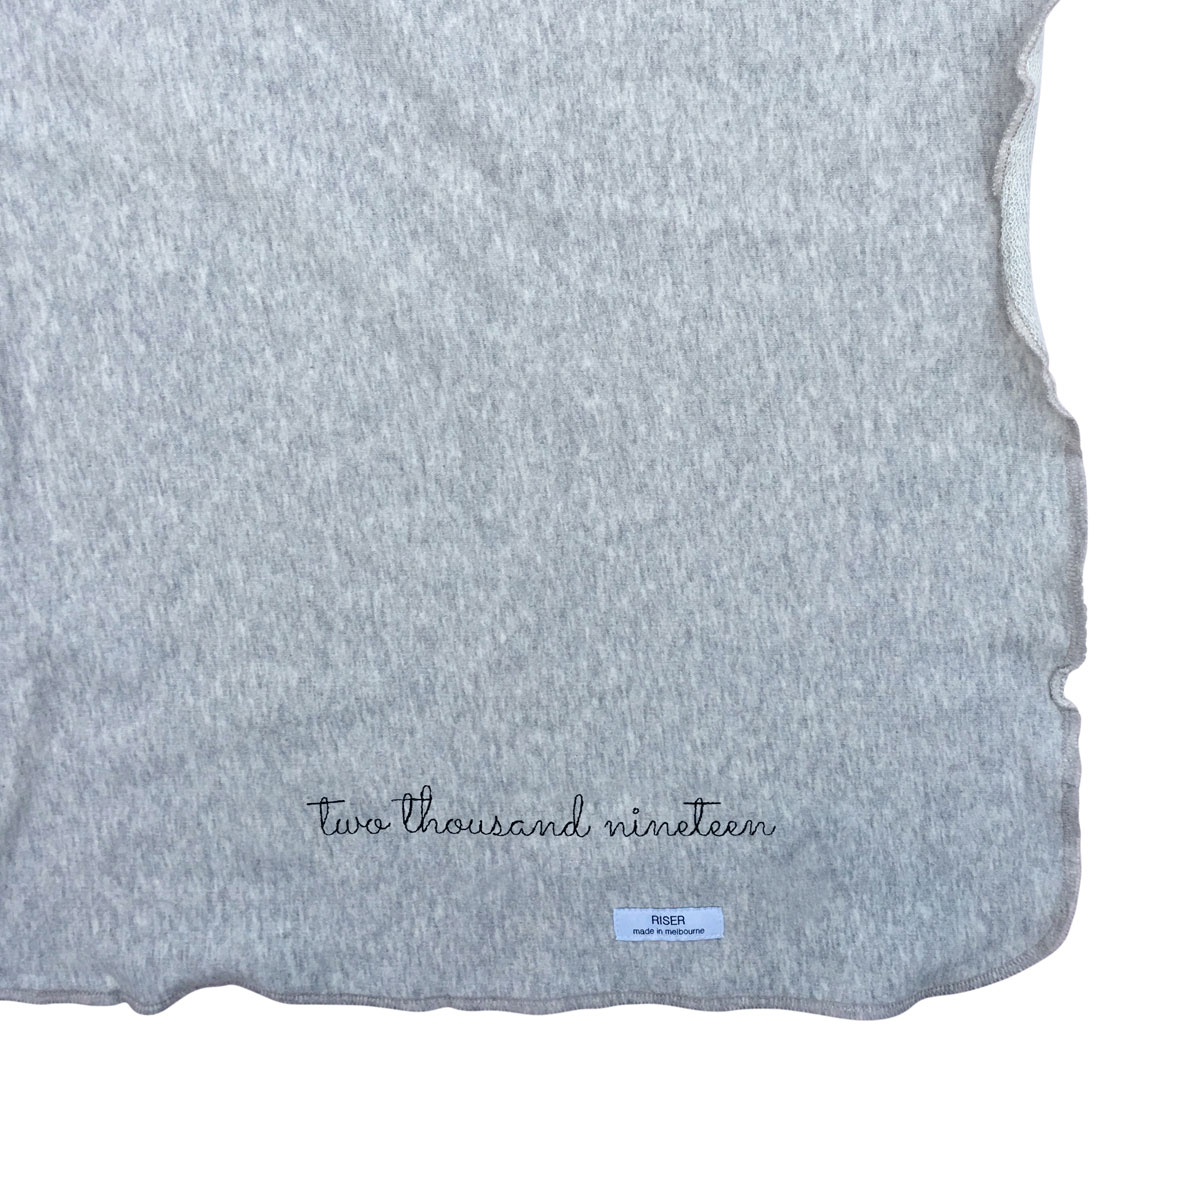 Early Riser Blanket in Grey Melange with 2019 Embroidery